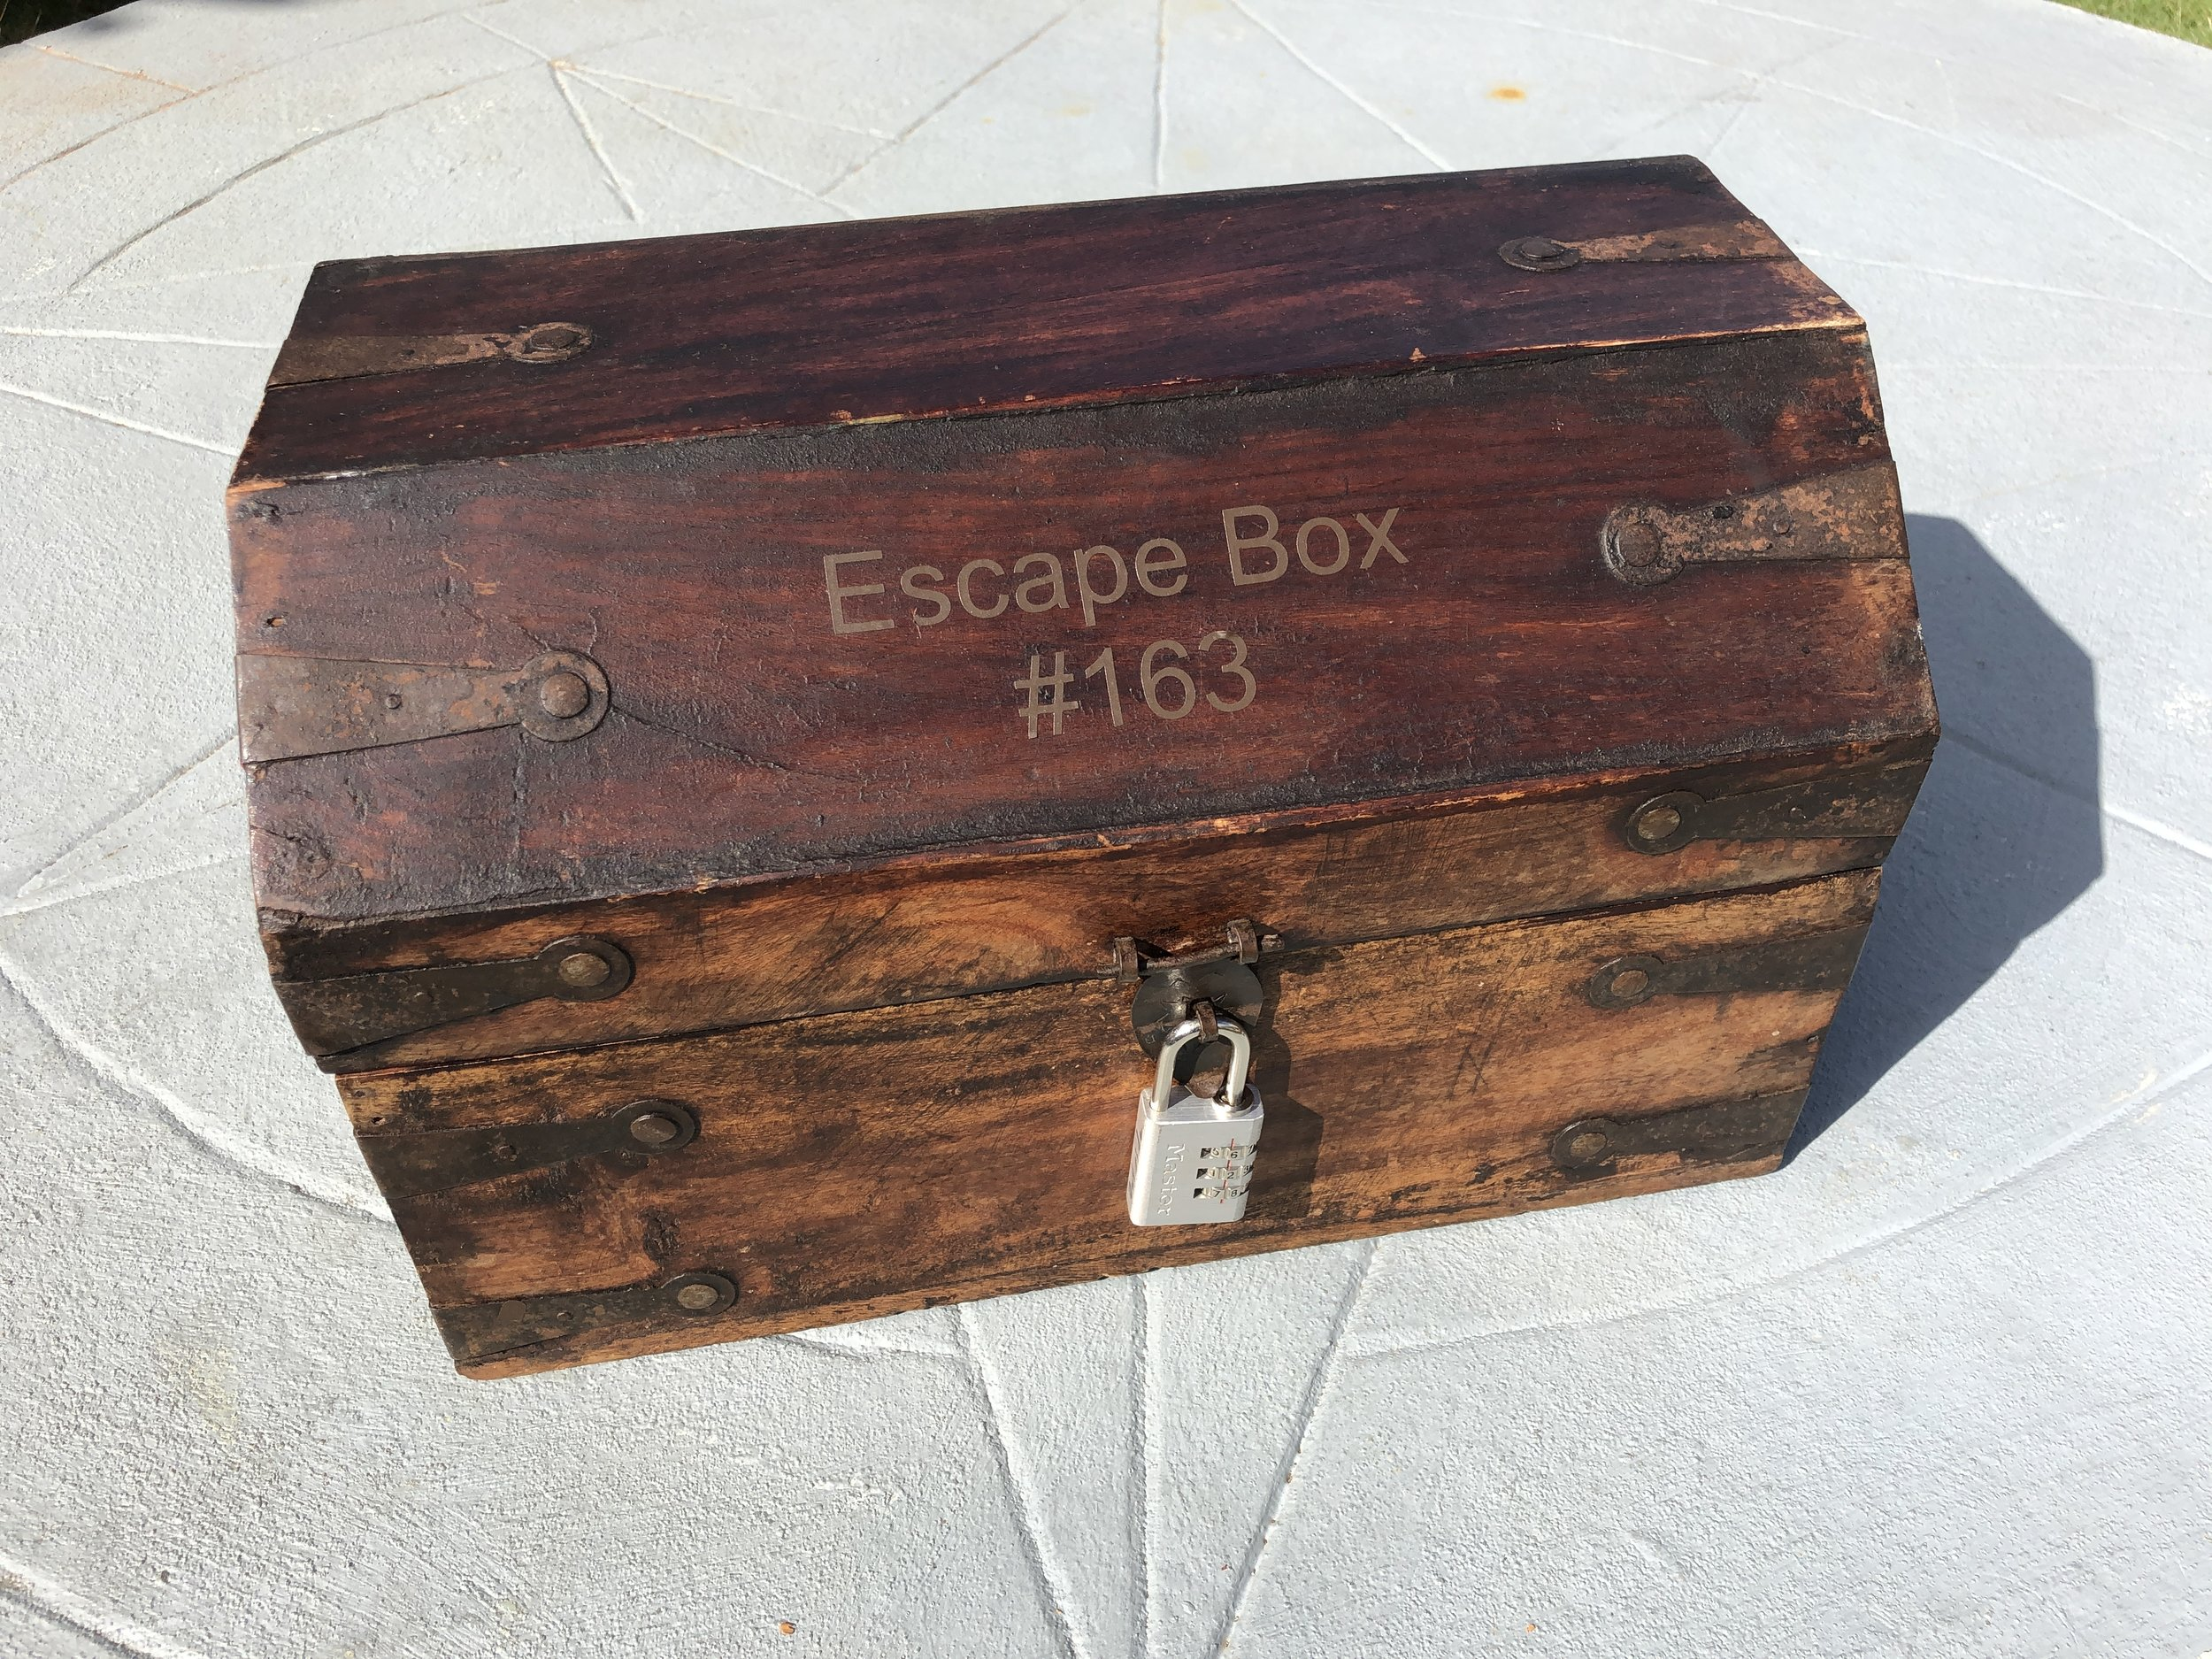 We make Escape Boxes (for sale) - Its like an escape room but in a box. Great to play with friends or family. Everything is real touchable and tangible. You can play it any time anywhere.